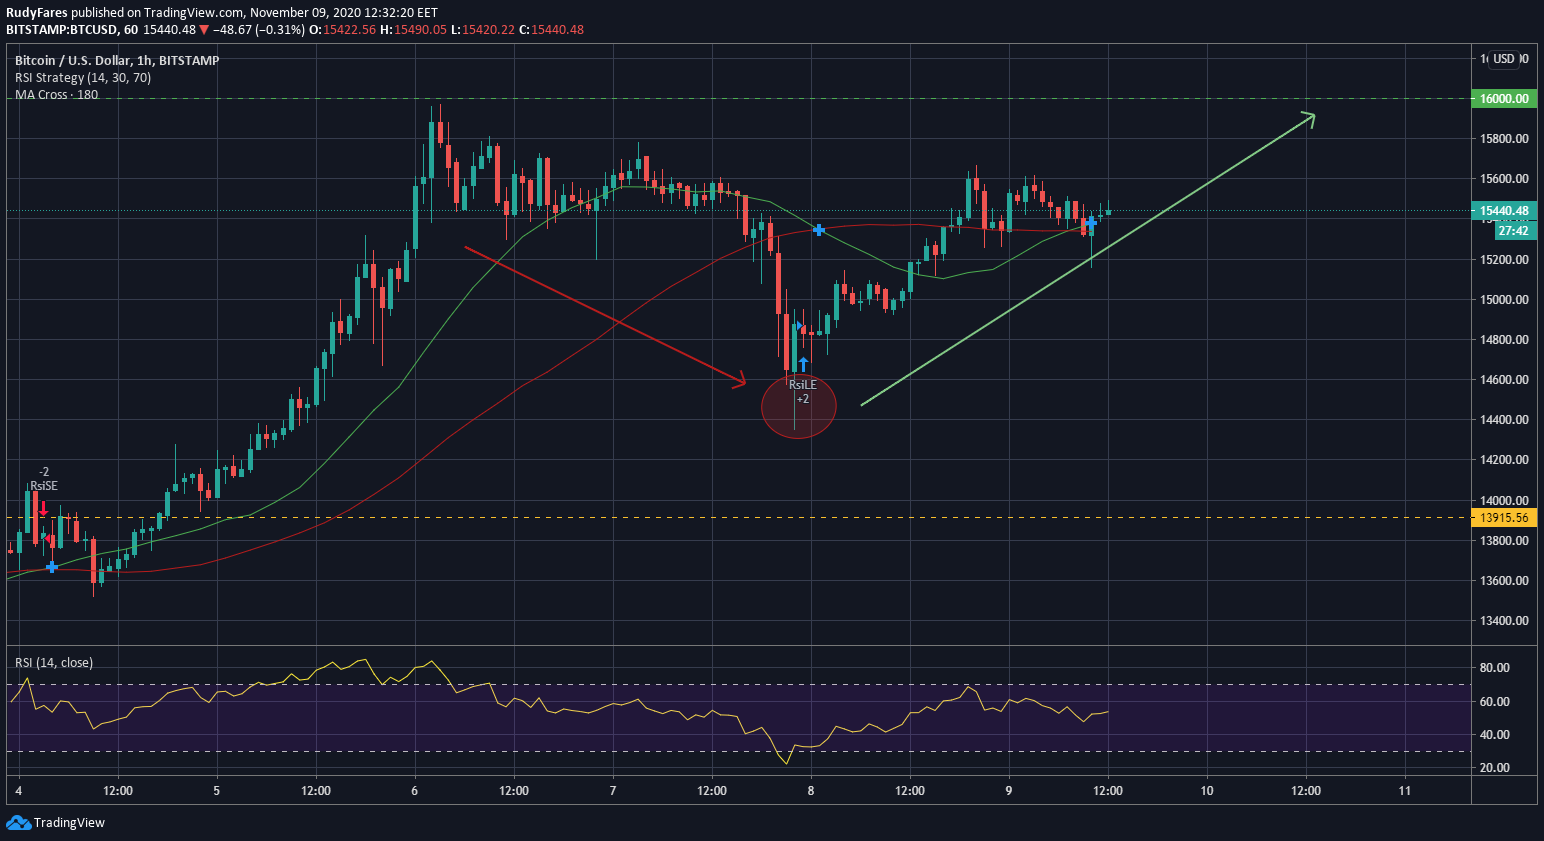 BTC/USD 1 hour chart – Weekend price-action